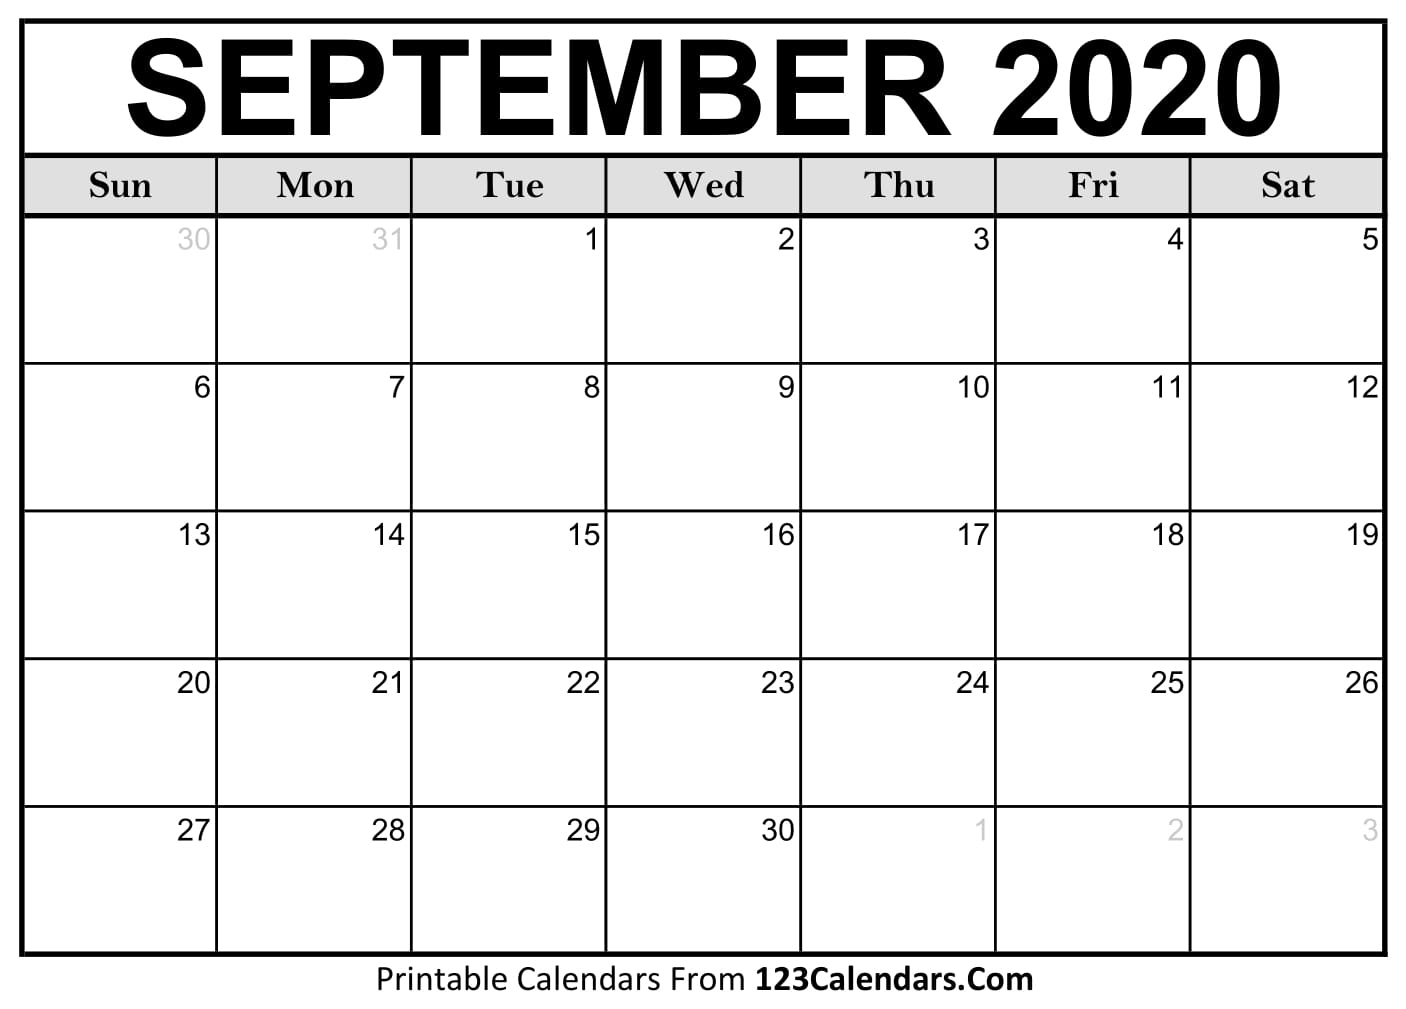 September 2020 Printable Calendar | 123Calendars with Calender August And September 2020